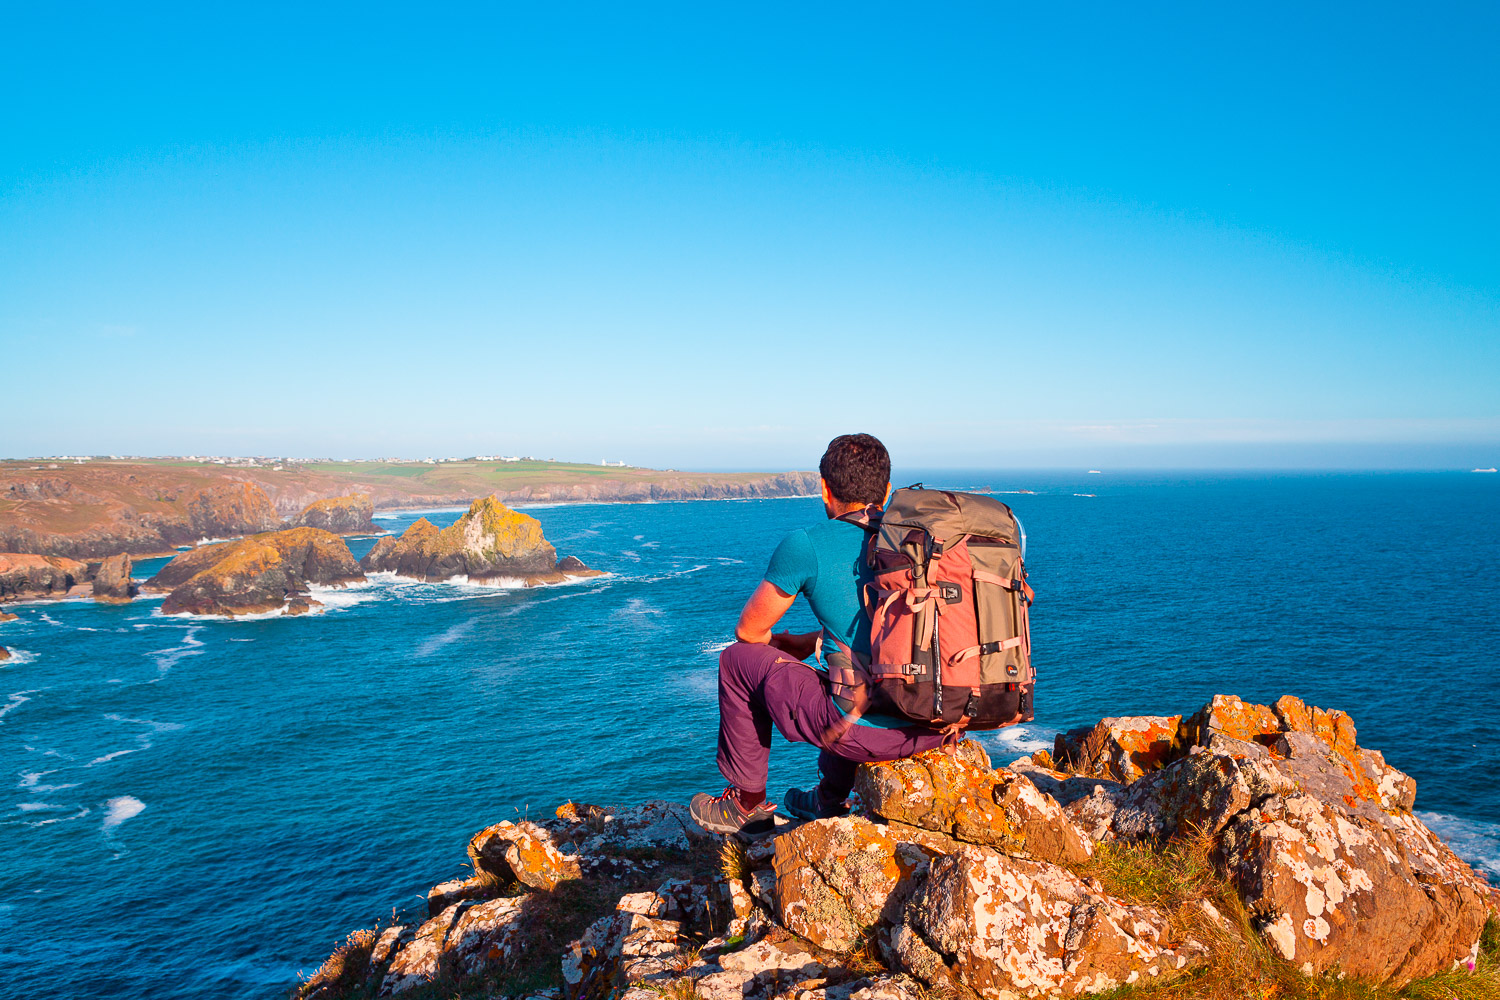 5 Camera Bags That Every Travel Photographer Needs - man sitting on a rock by the ocean